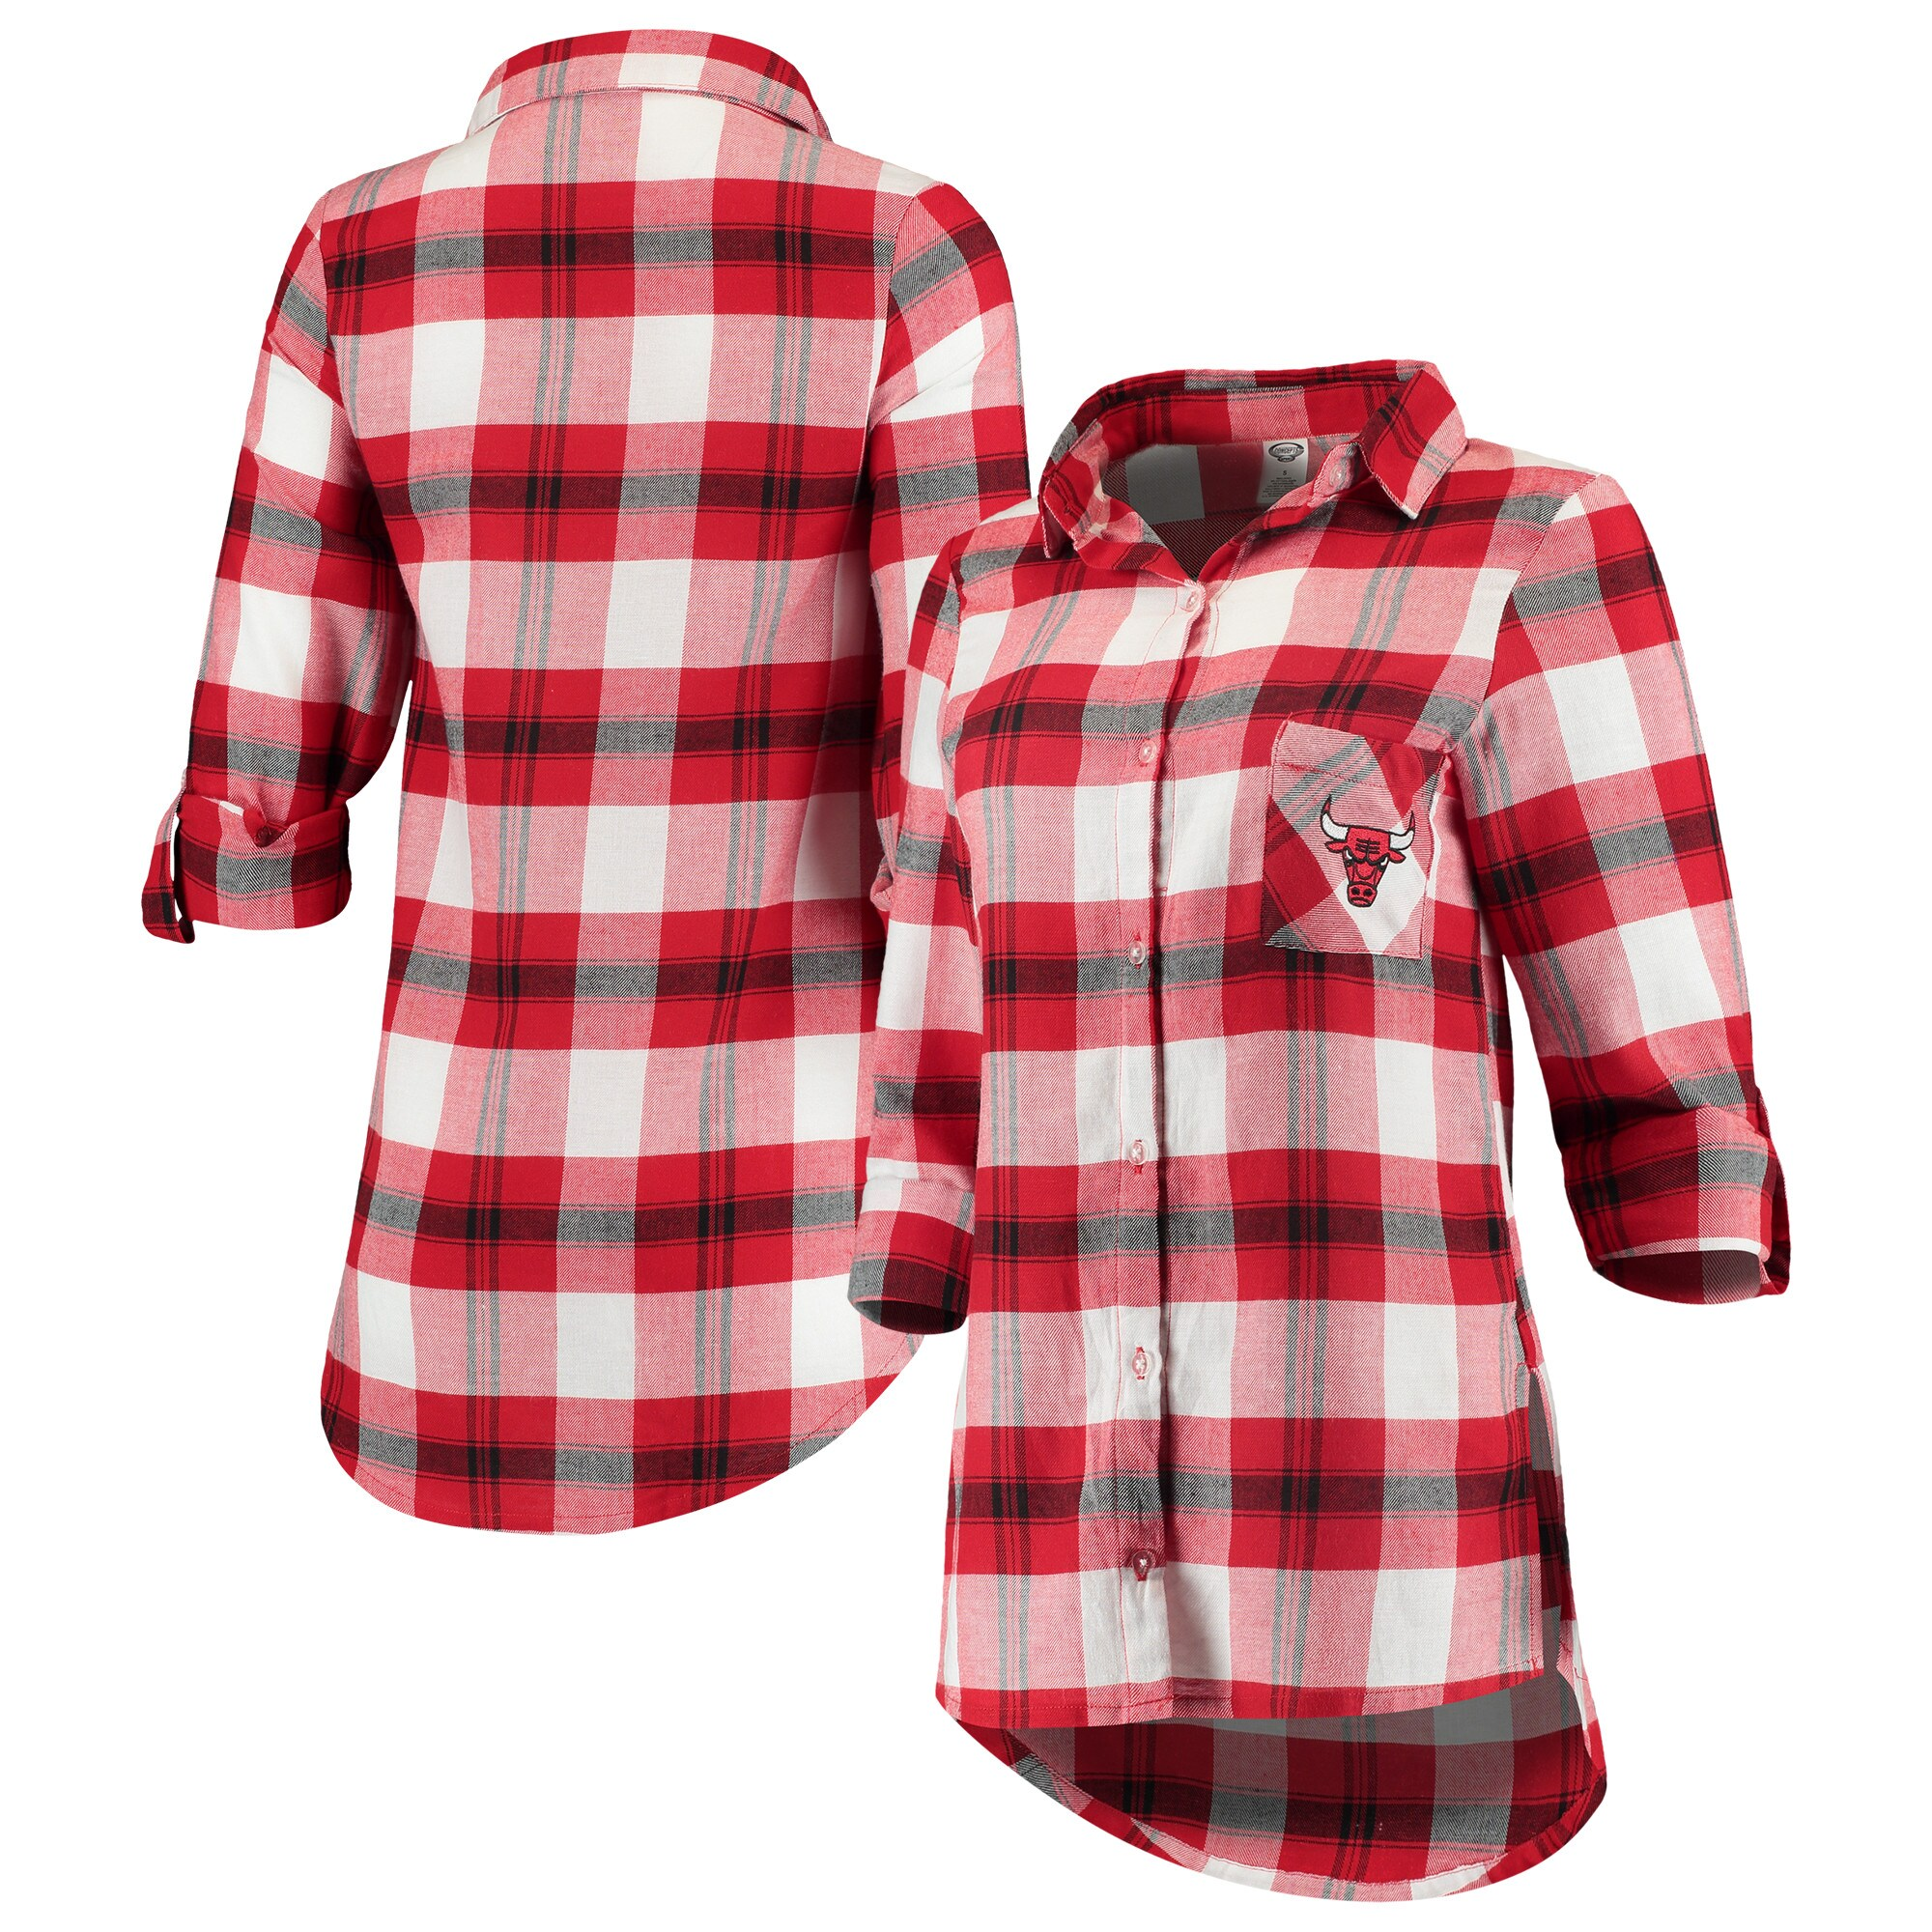 Chicago Bulls Concepts Sport Women's Headway Long Sleeve Plaid Tunic - Red/Black